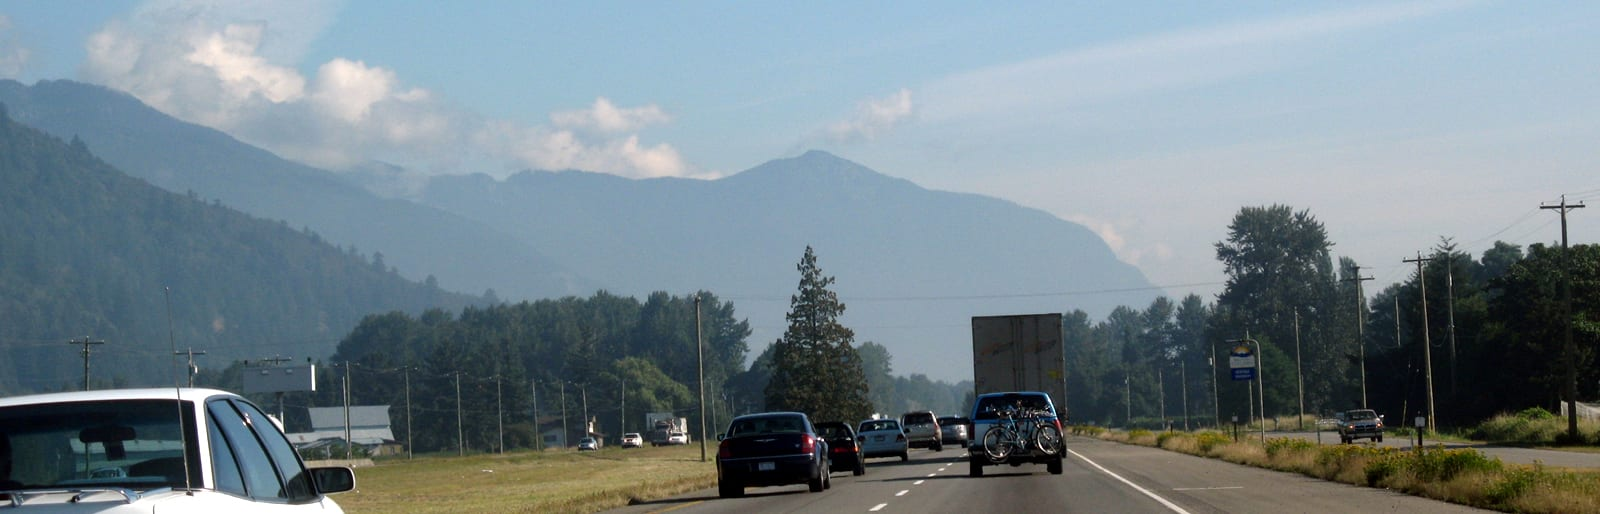 Abbottsford-Trans-Canada Hghway-Eas tTo Chilliwack-sliver